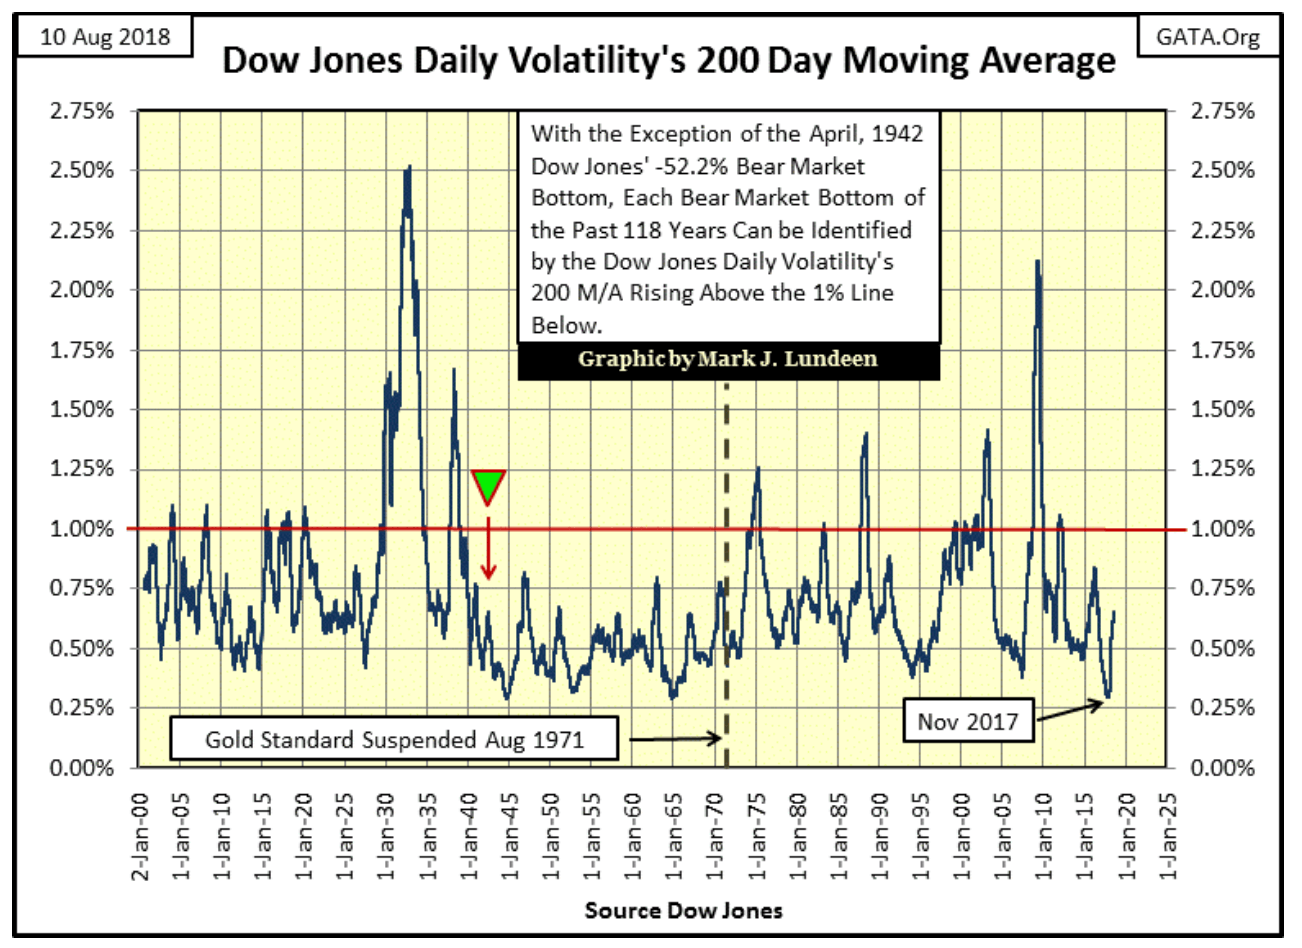 dow jones daily volatility